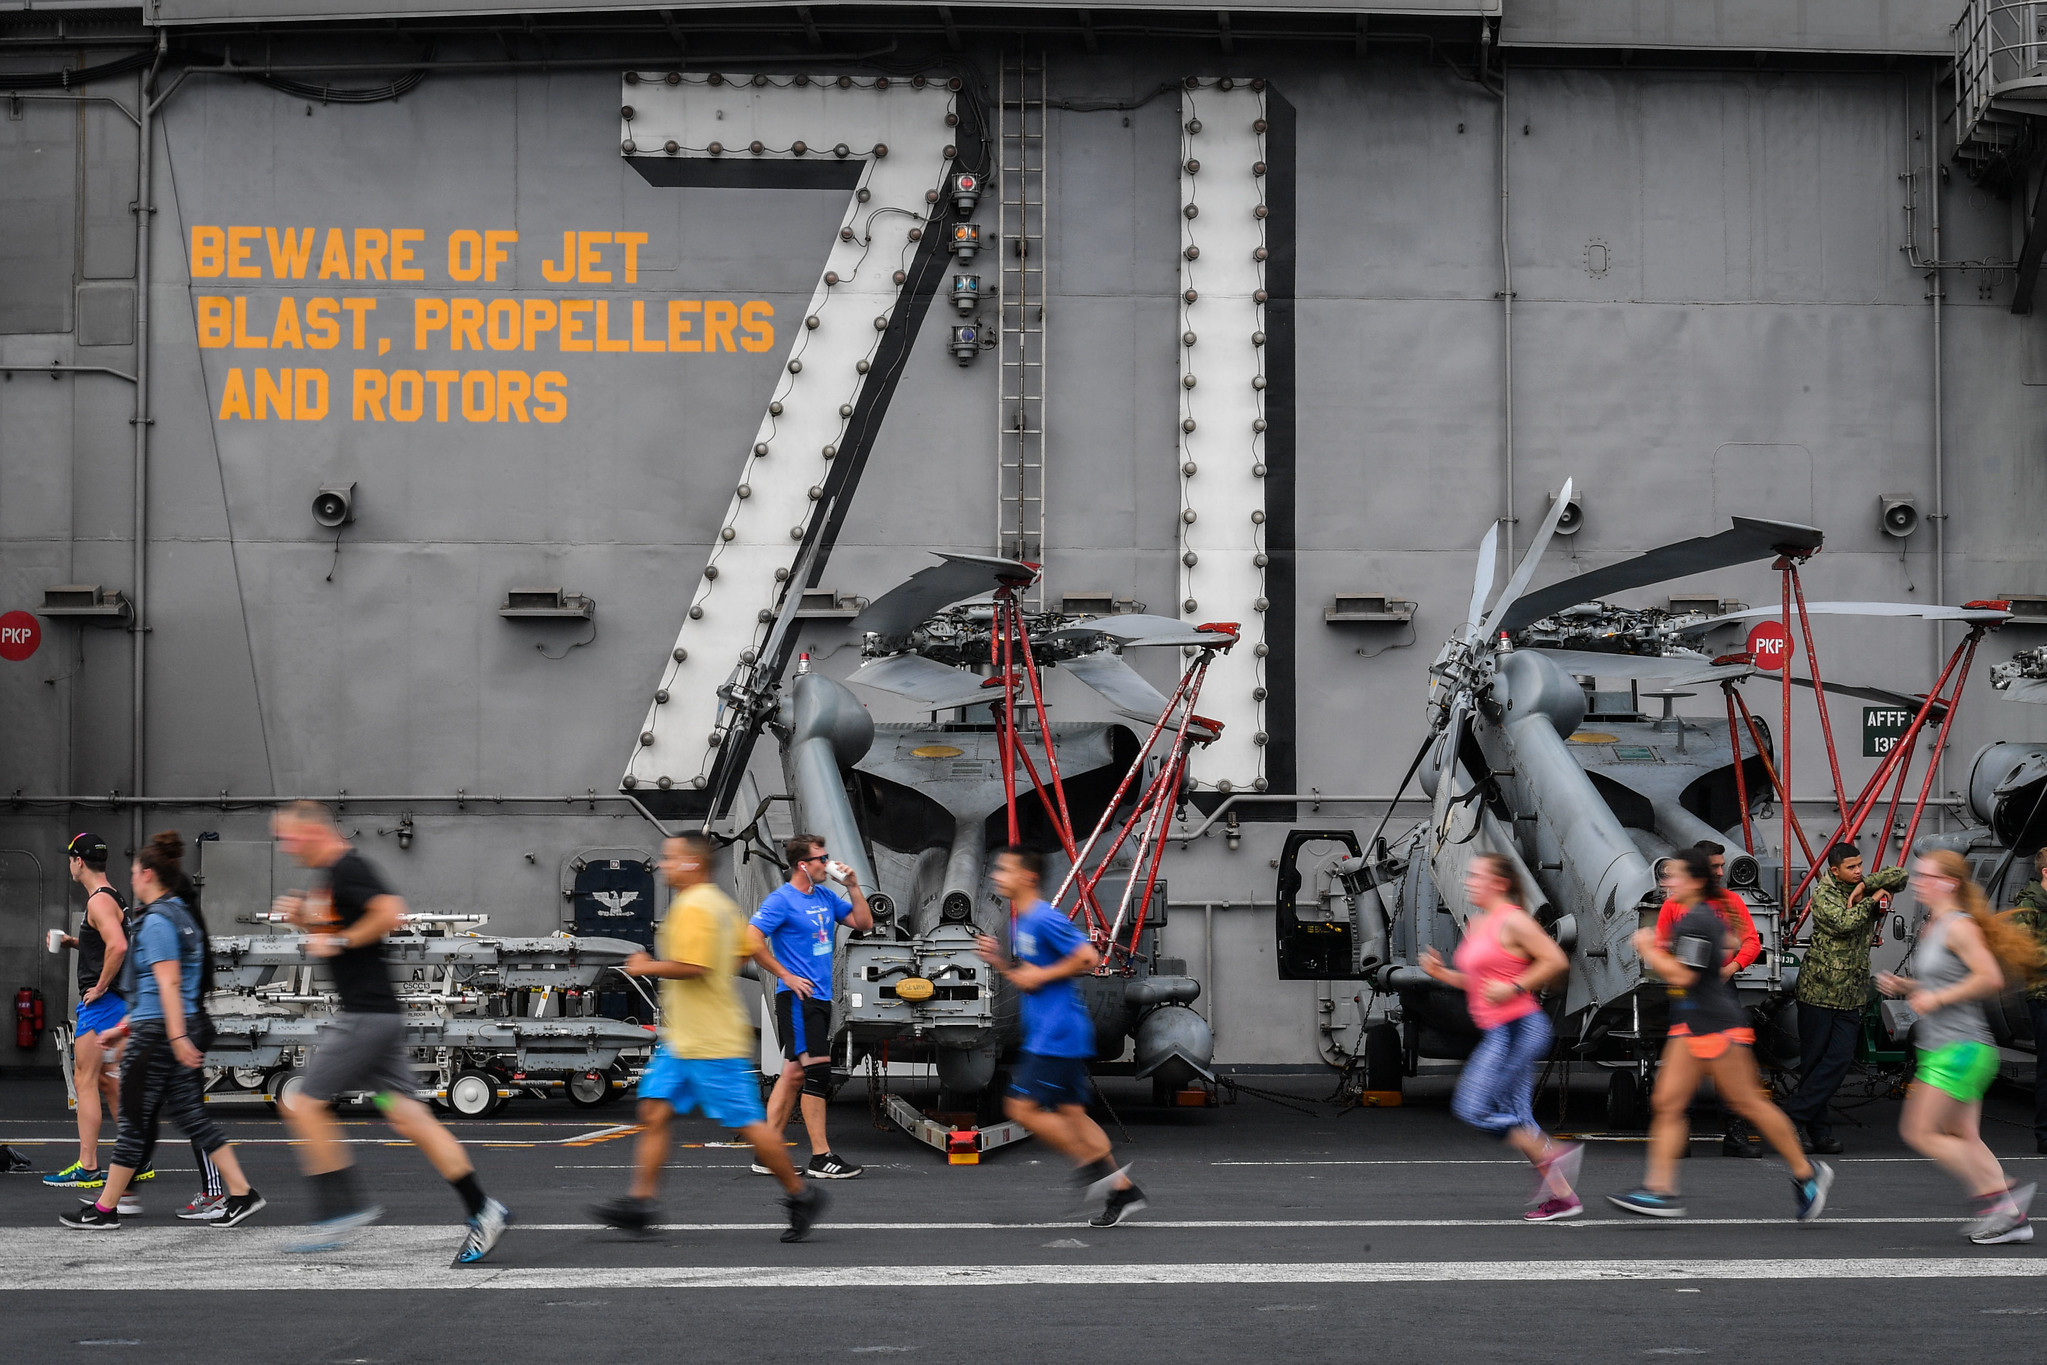 Sailors run during a Summer Sun 5K on the flight deck of the aircraft carrier USS Theodore Roosevelt (CVN 71) on July 21, 2019. (Mass Communication Specialist Seaman OIympia O. McCoy/Navy)